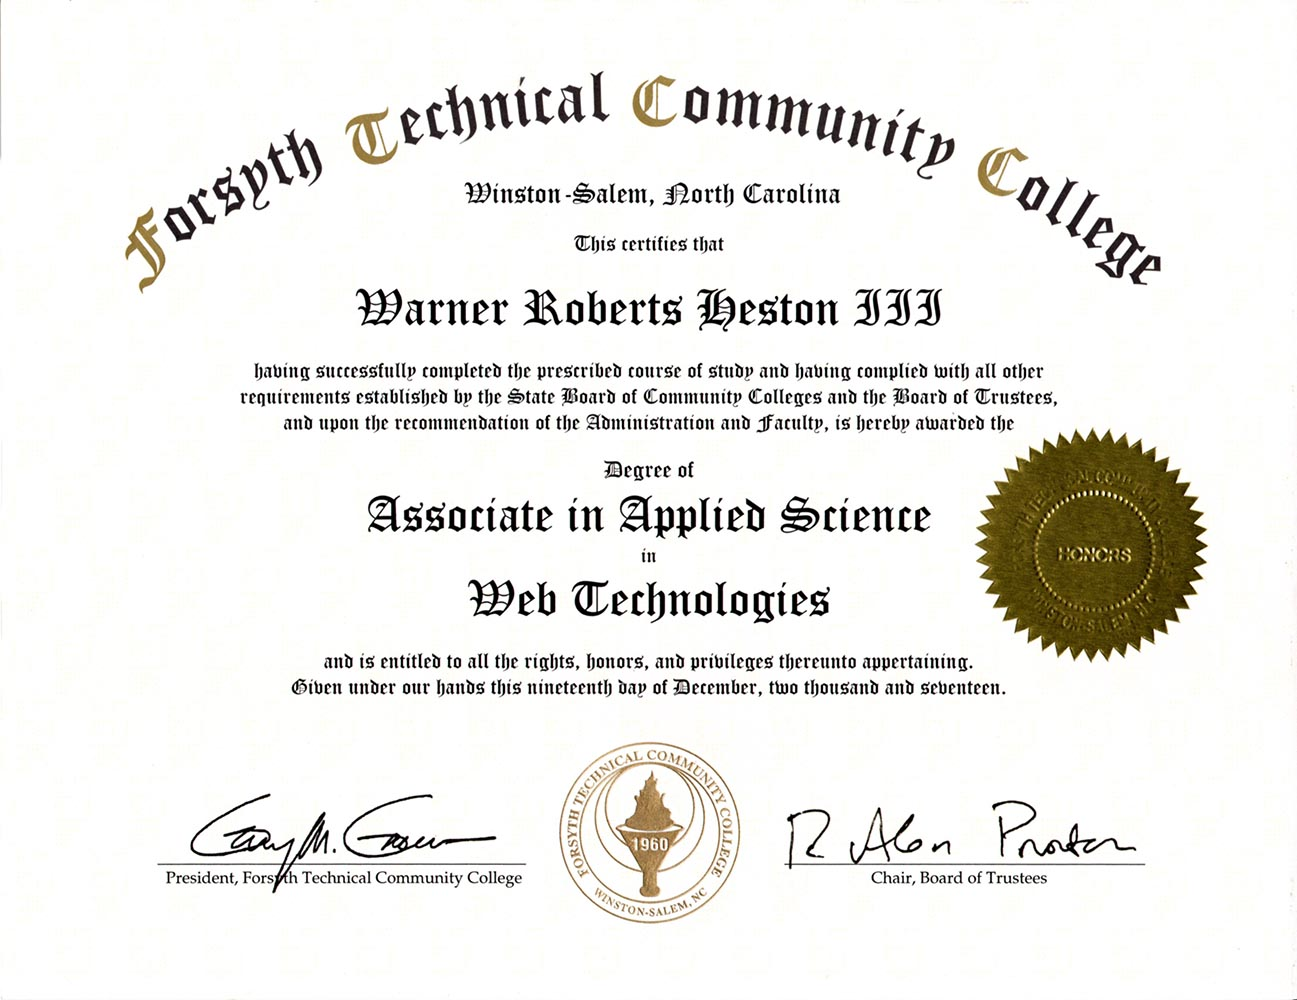 Web Tech Degree Image